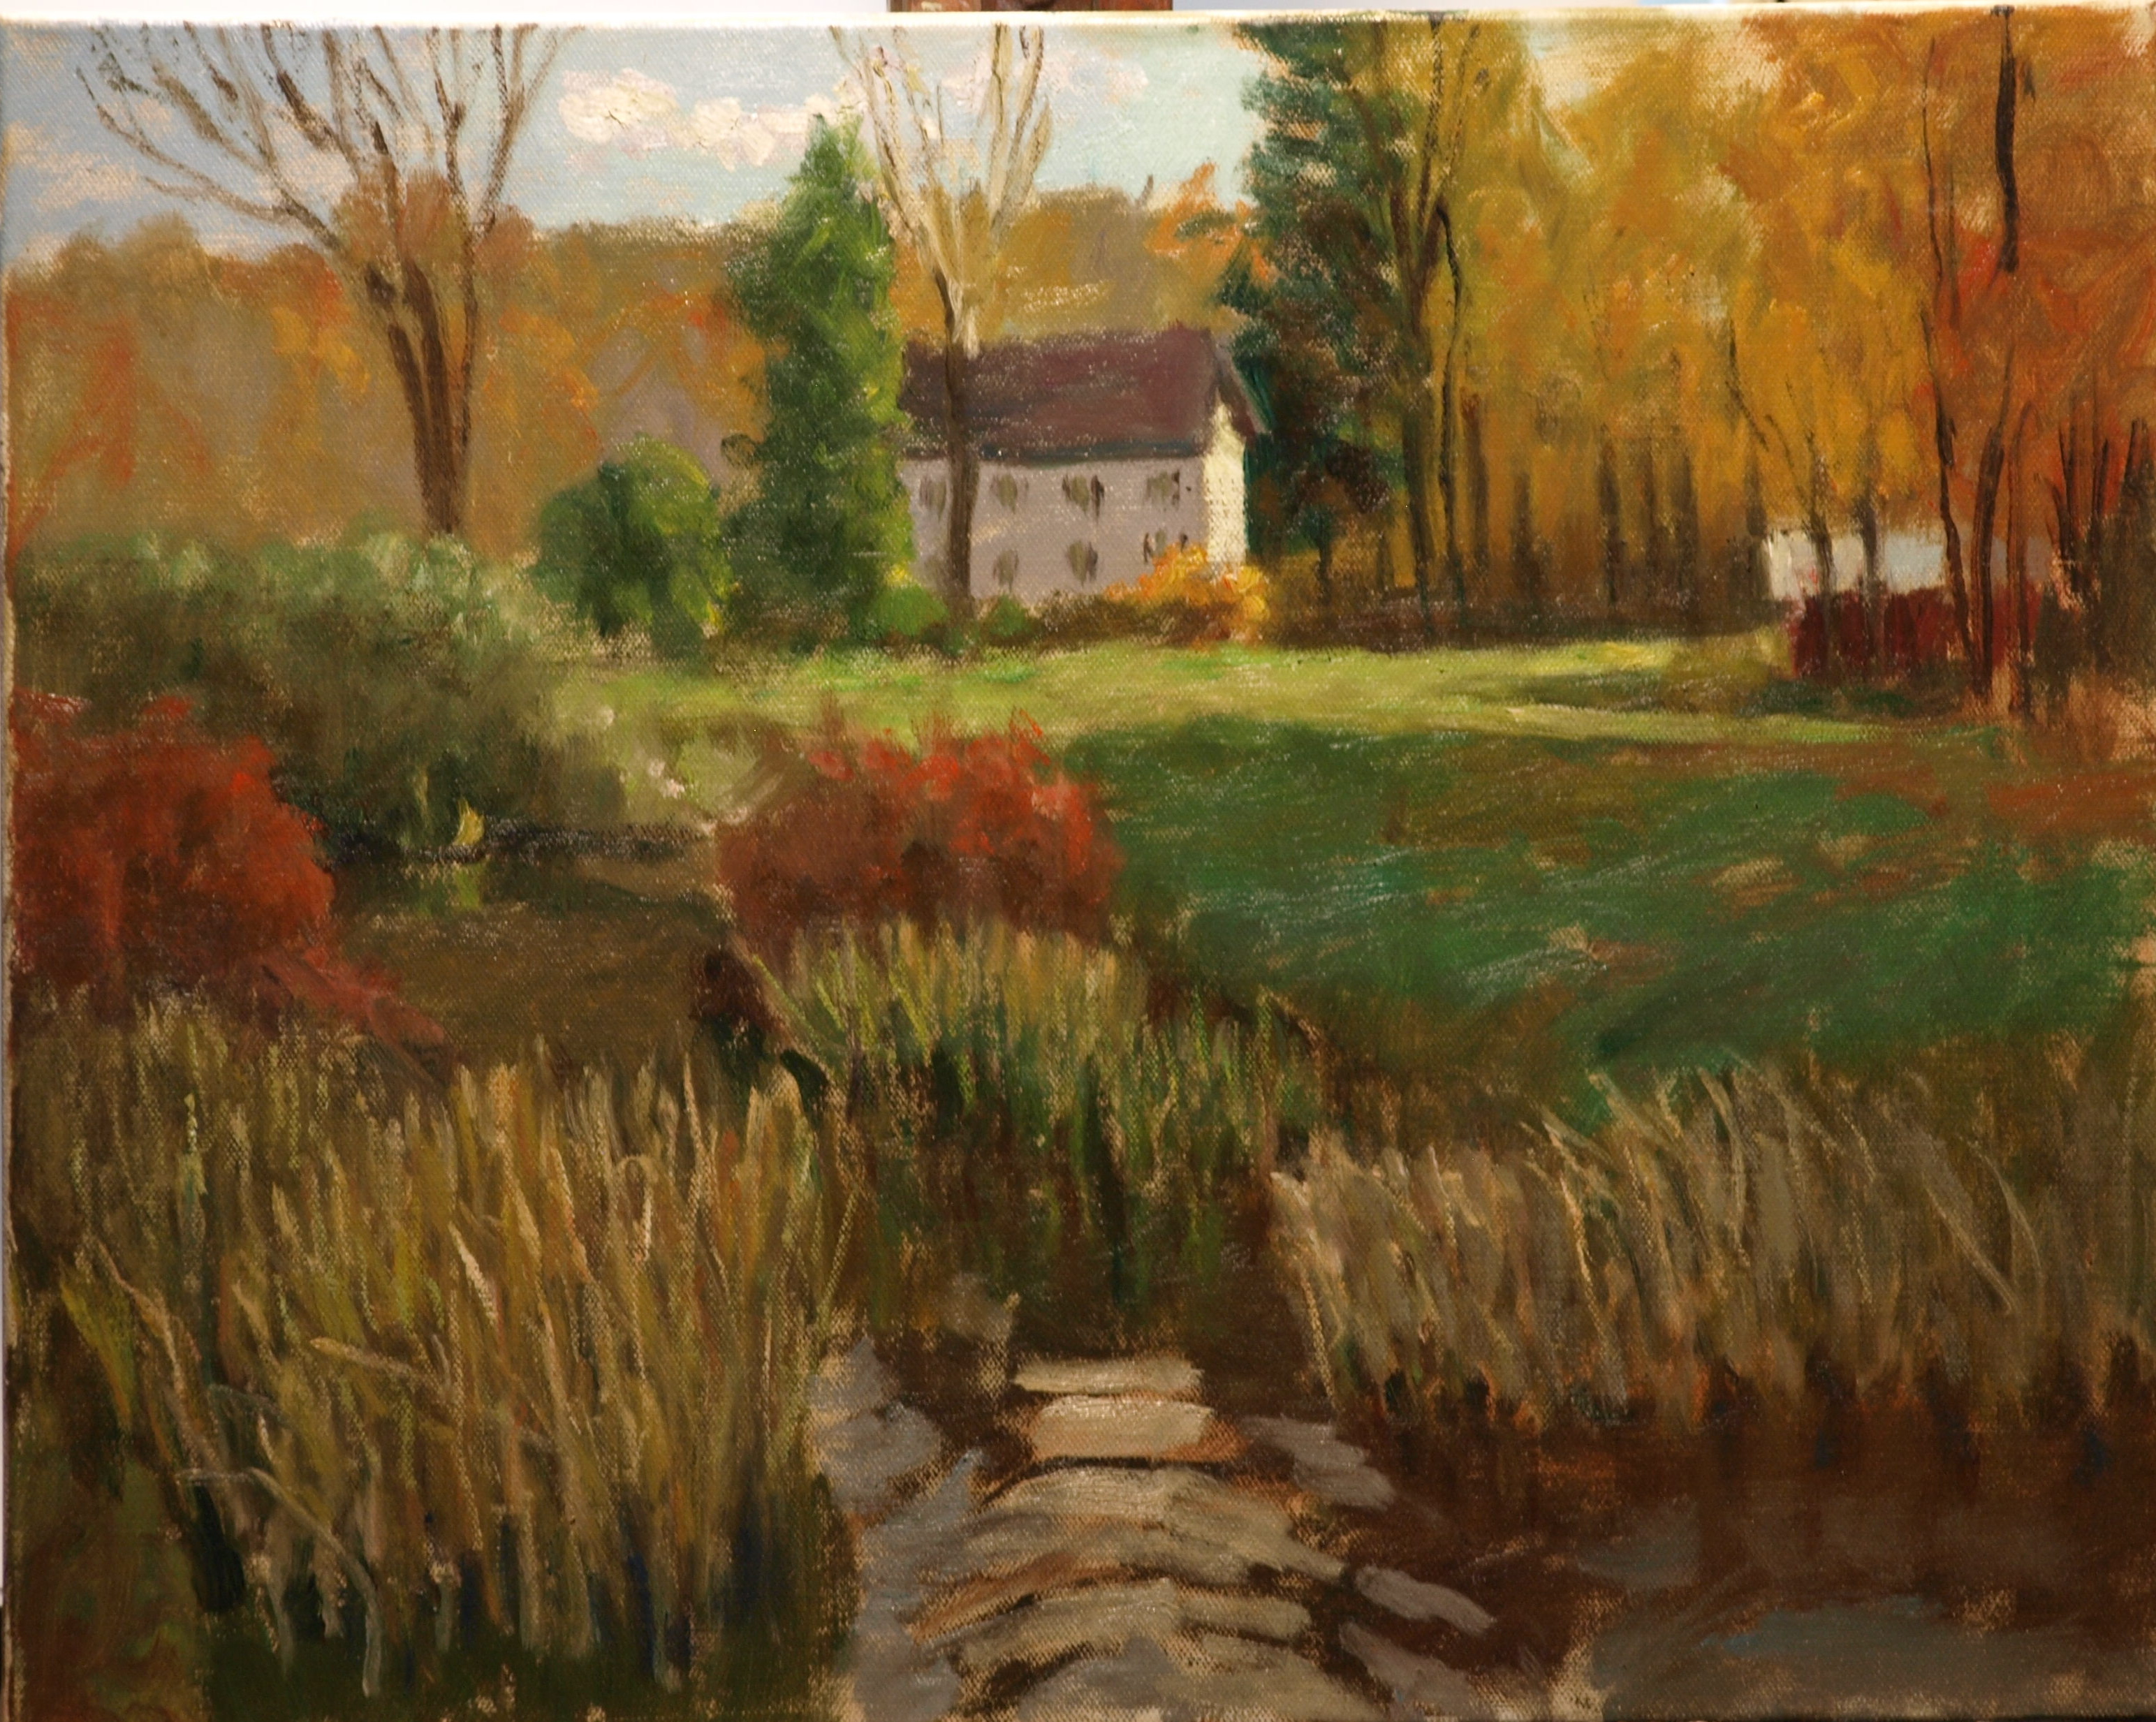 Brook in South Kent, Oil on Canvas, 16 x 20 Inches, by Richard Stalter, $650